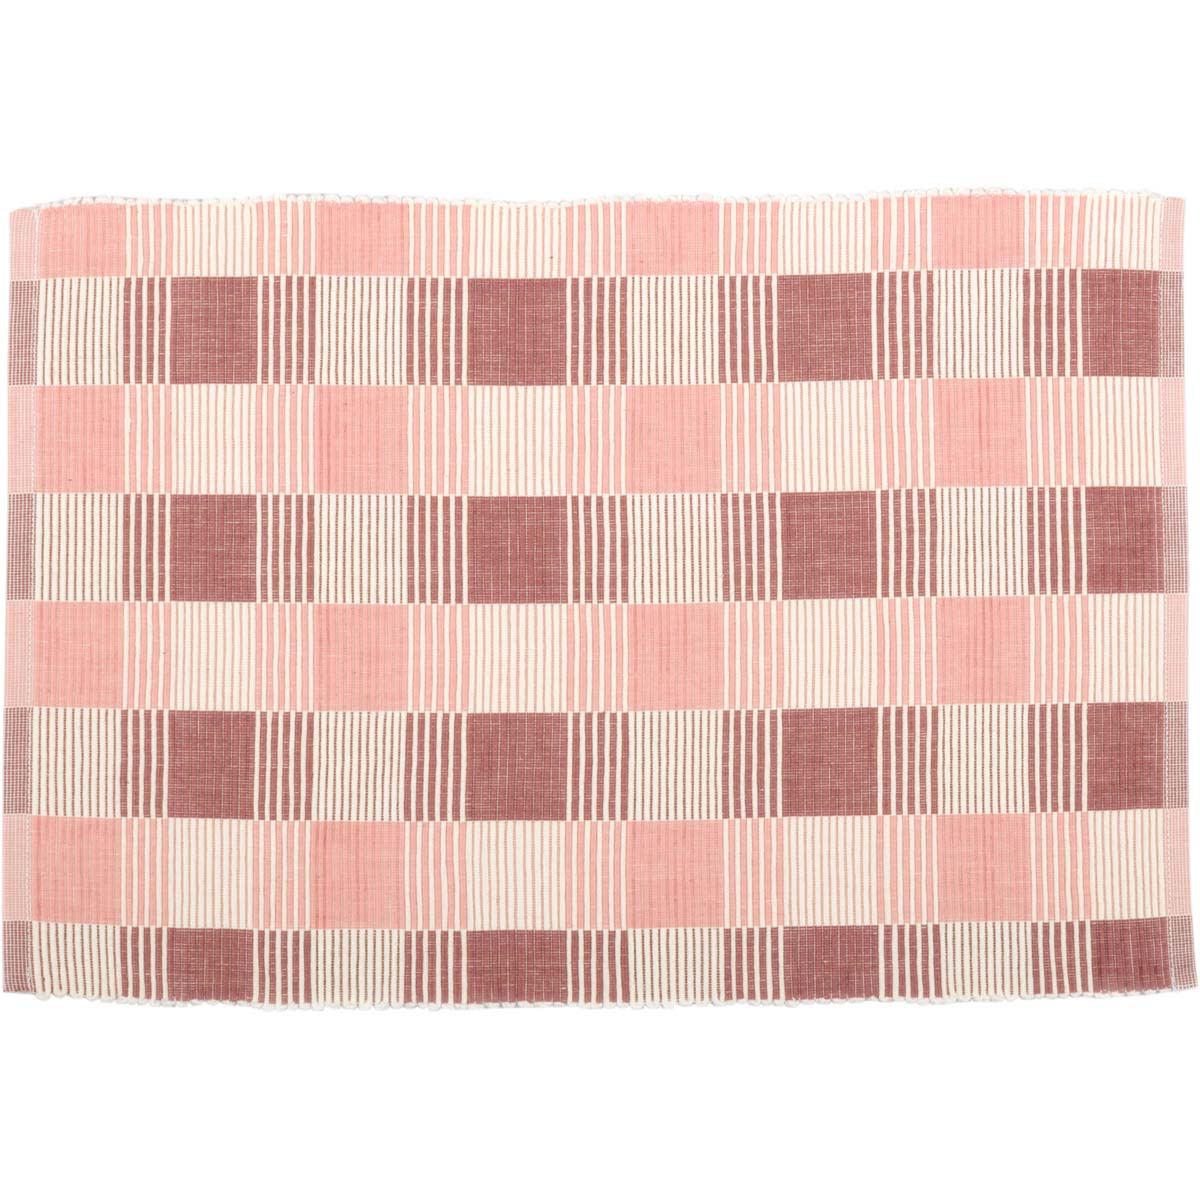 Daphne Ribbed Placemat Set of 6 12x18 - Woodrol